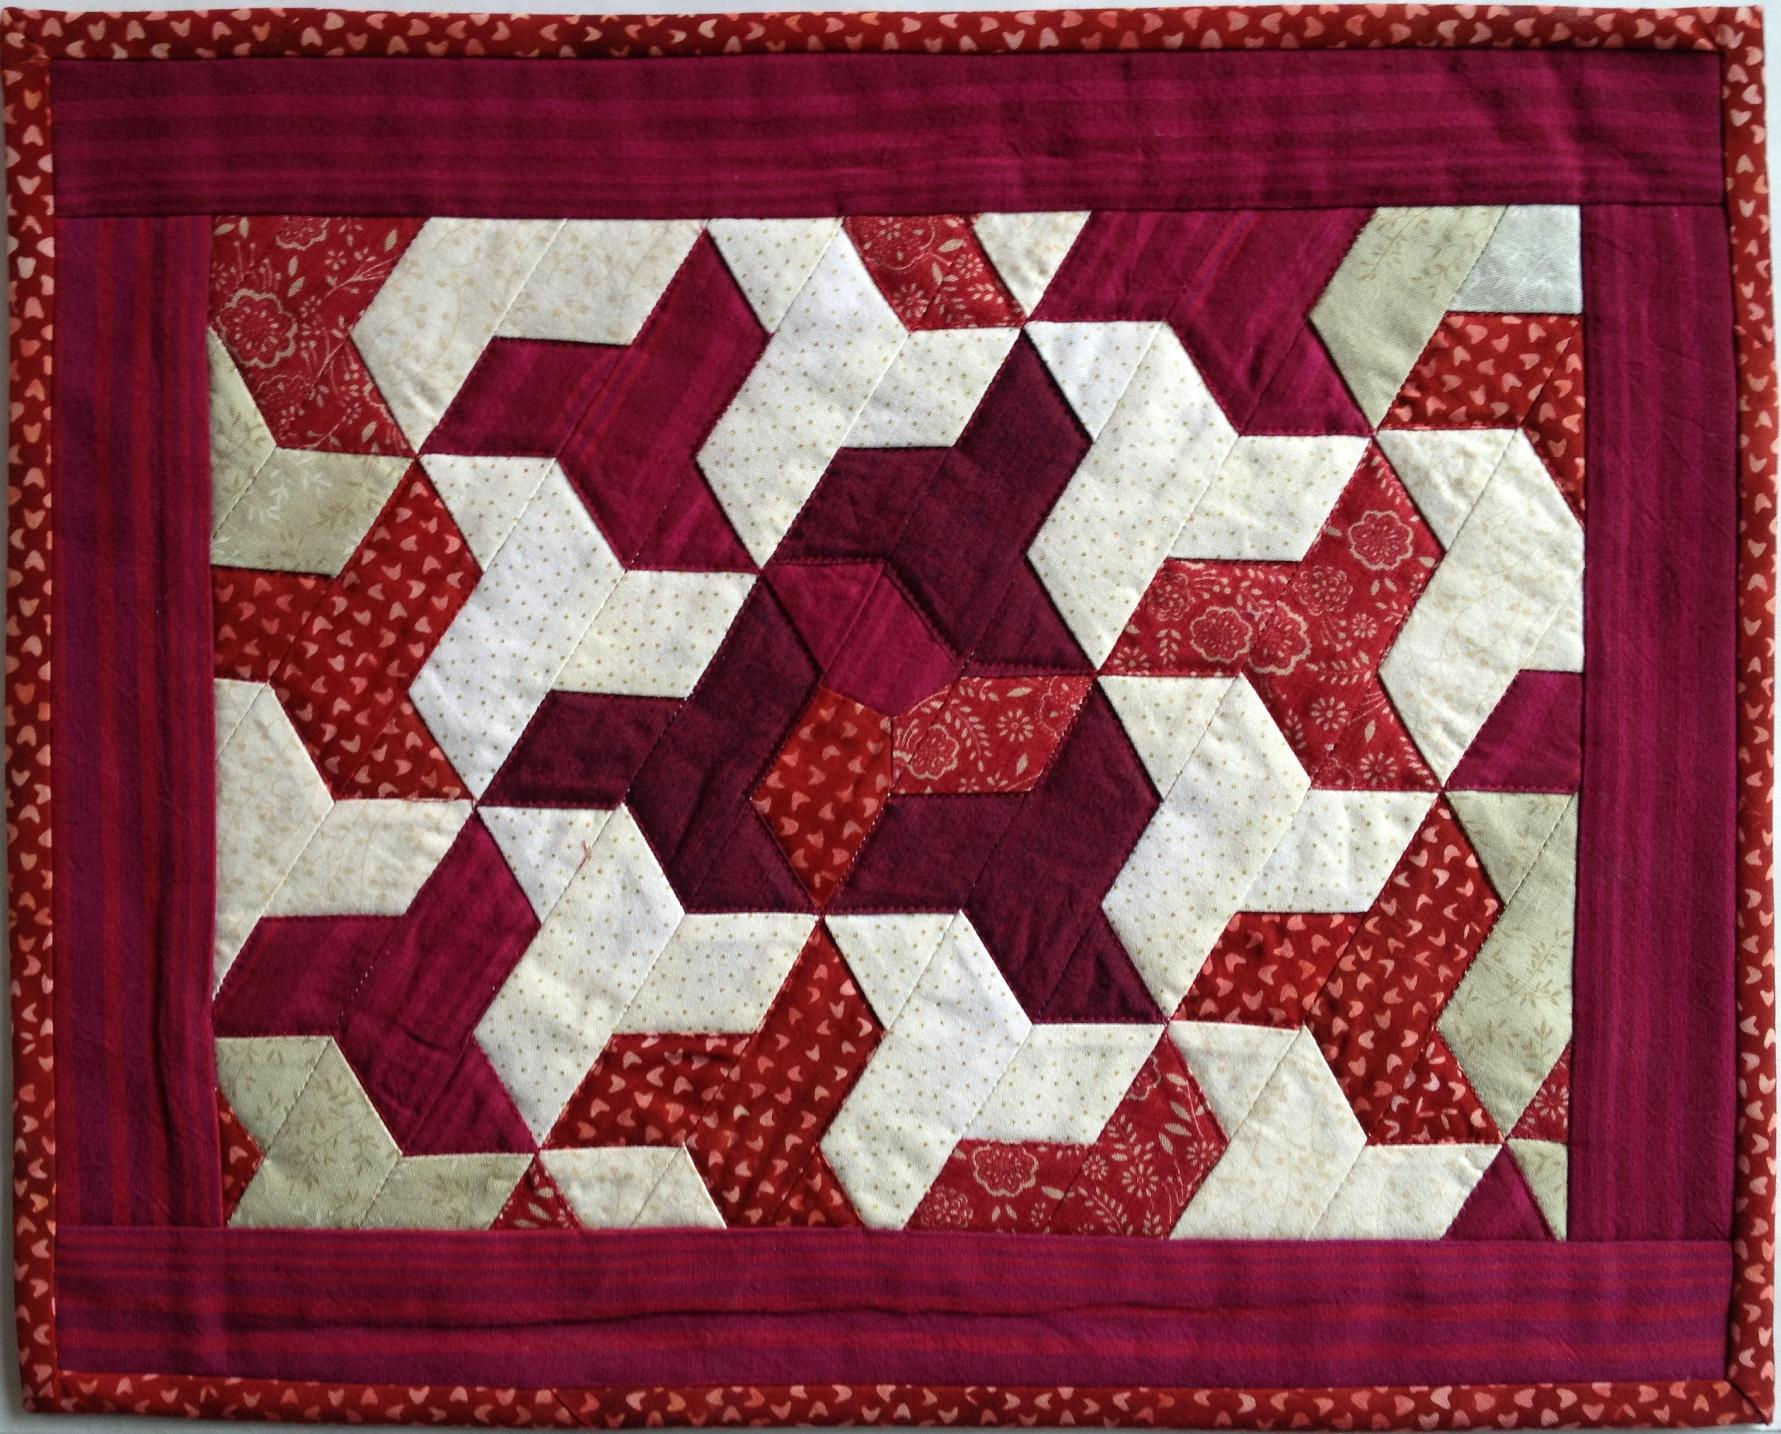 Marjorie Rice's 90th Birthday Quilt